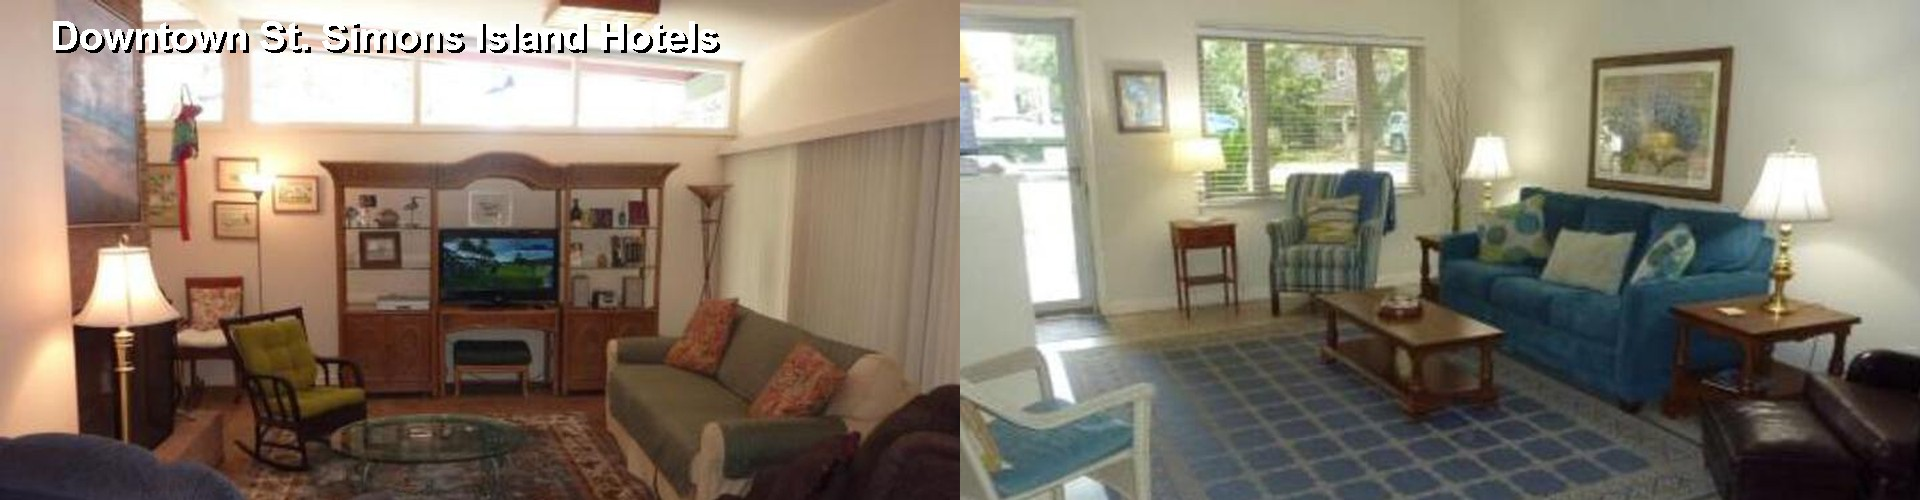 5 Best Hotels near Downtown St. Simons Island